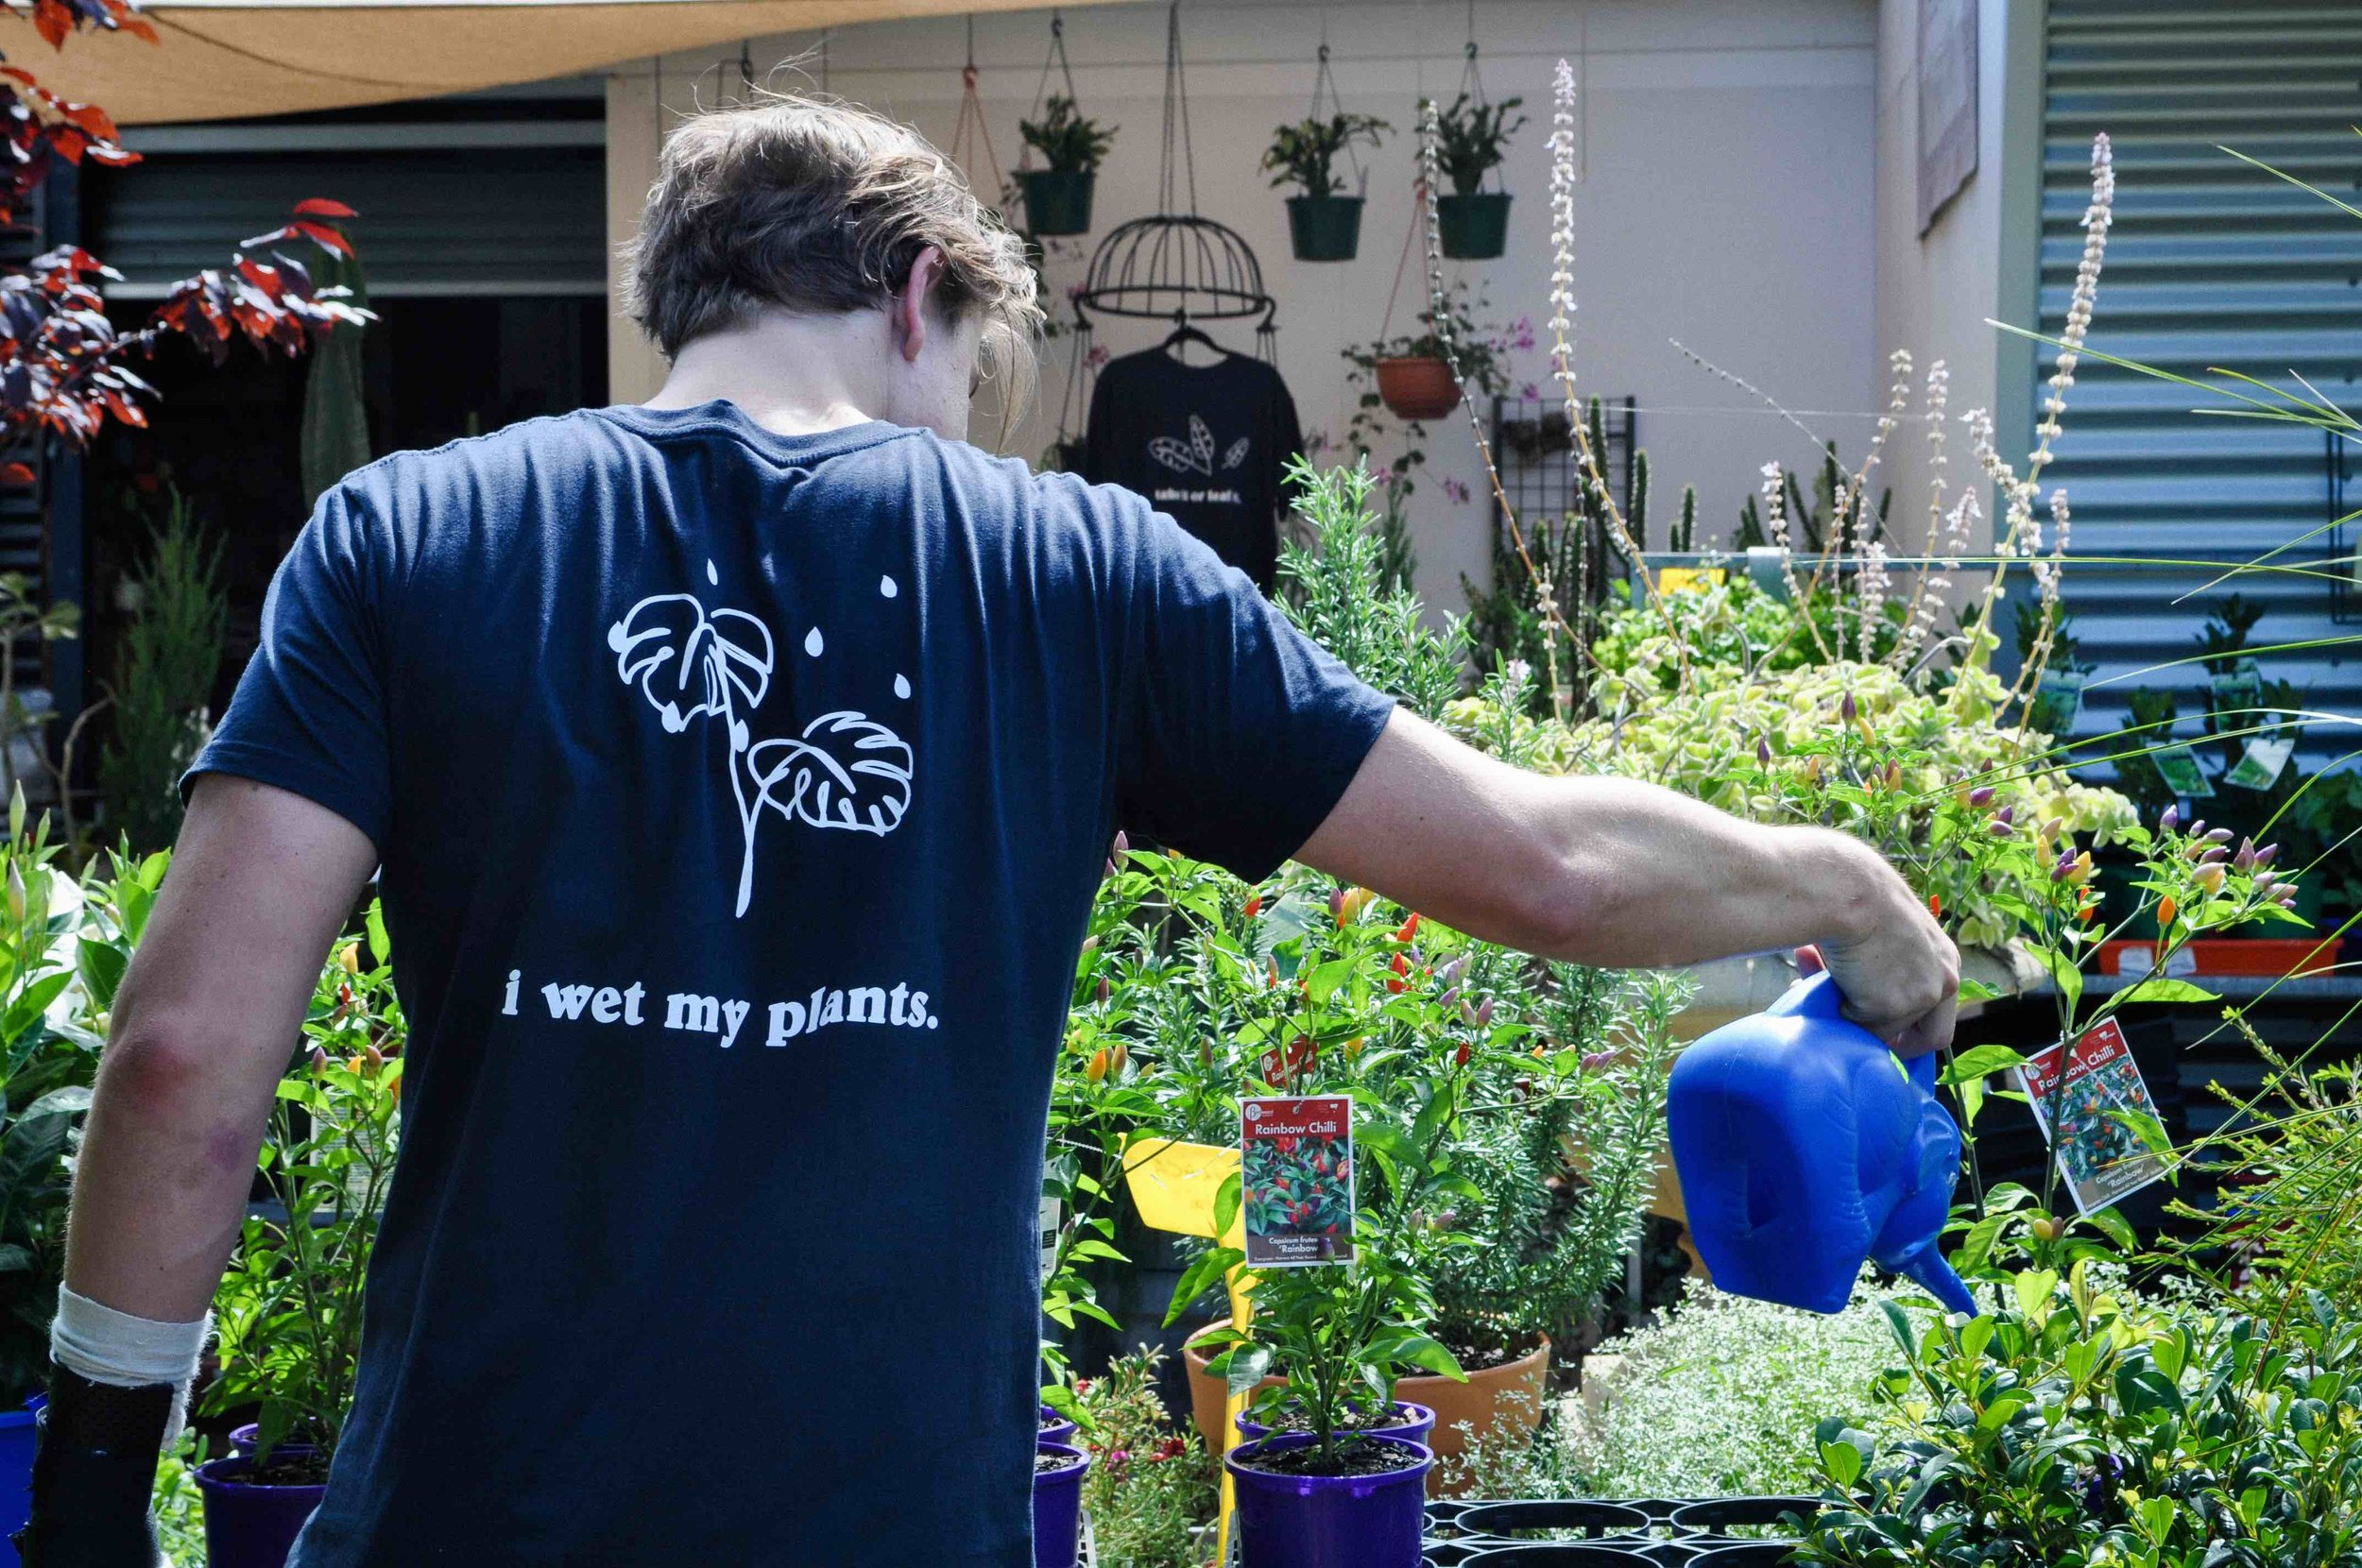 It's cool to Wet Your Plants - Just don't do it too often!Cottage Garden Tees available in store 🌿